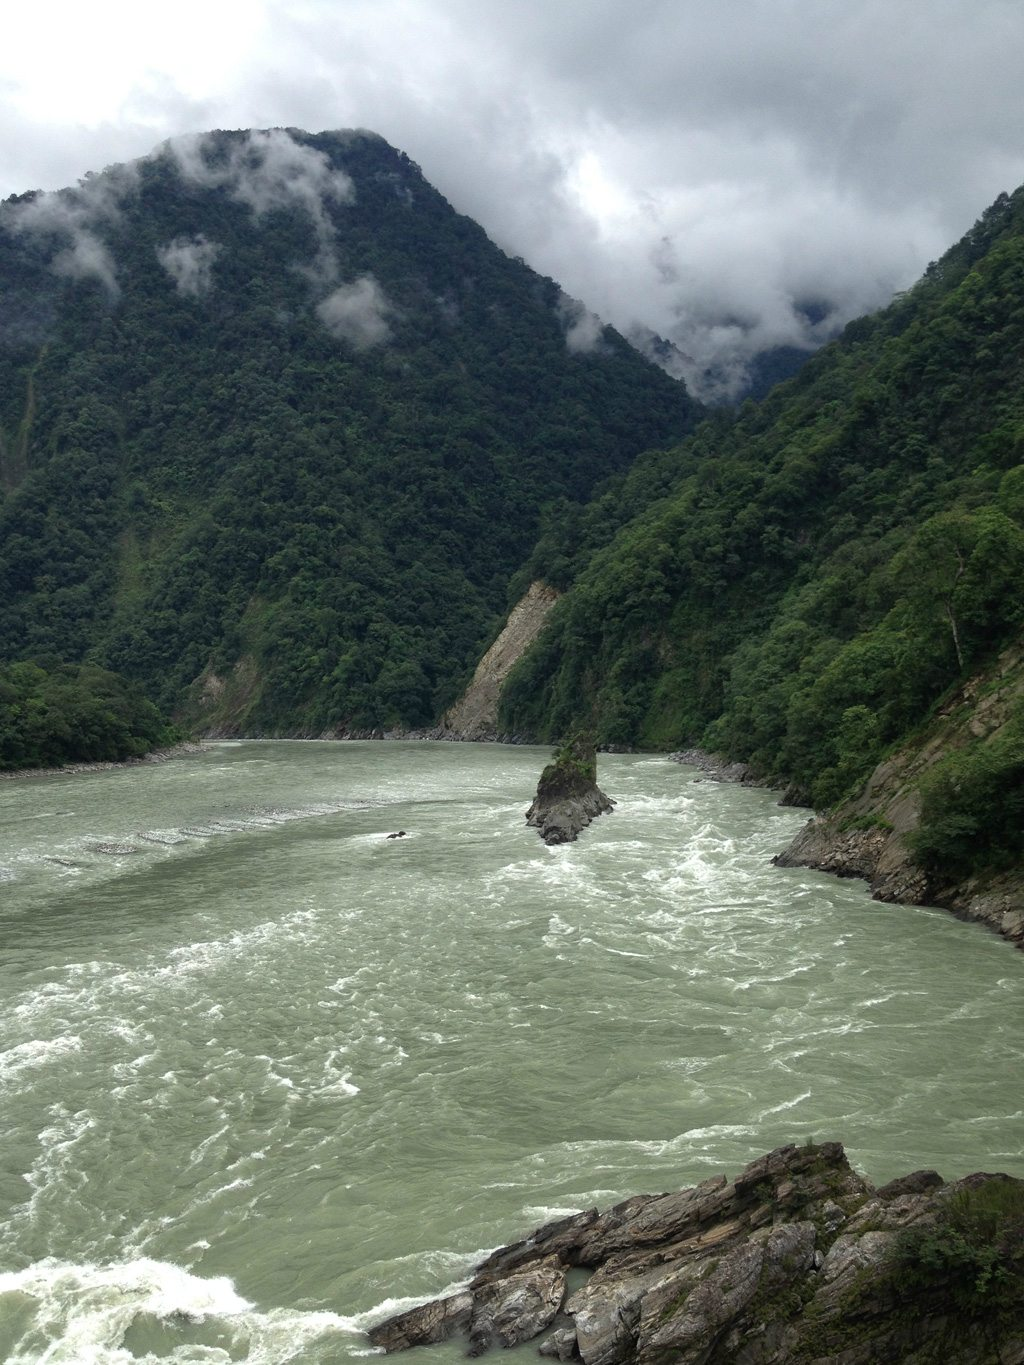 Parasuramkund Arunachal Pradesh Mountains River